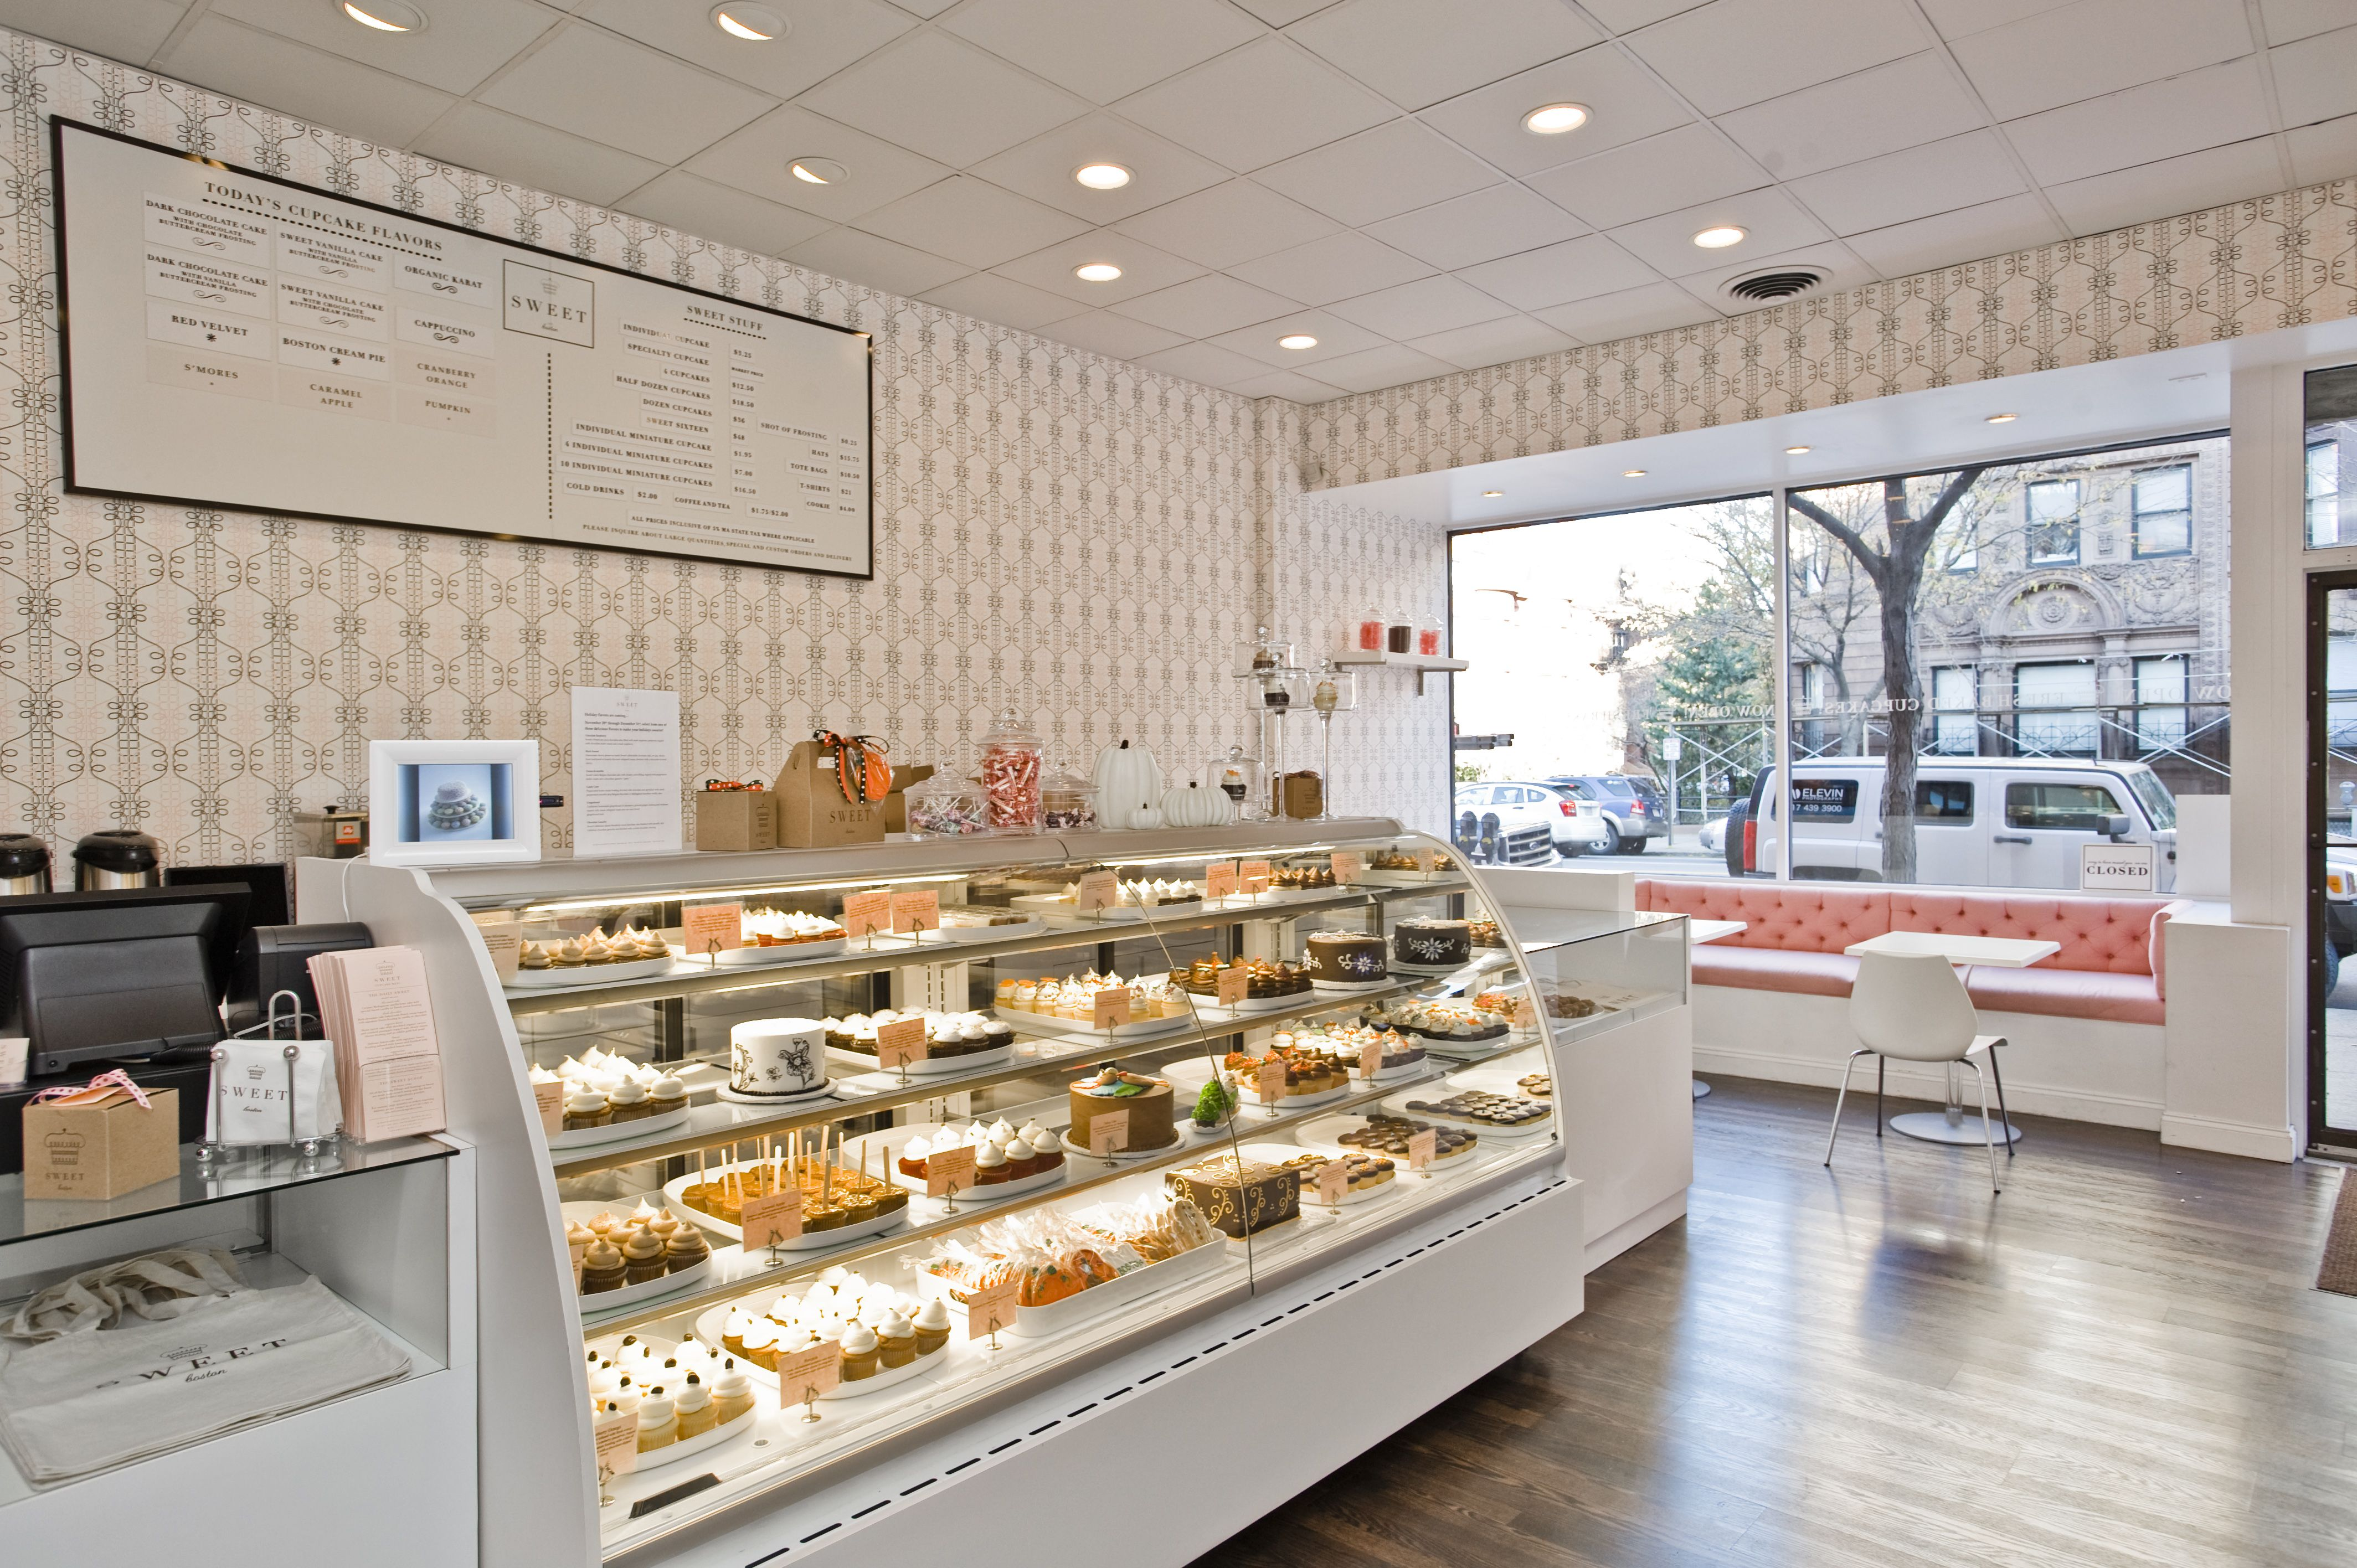 The Sweet Escape The Luxury Spot Bakery Design Interior Bakery Shop Interior Bakery Interior